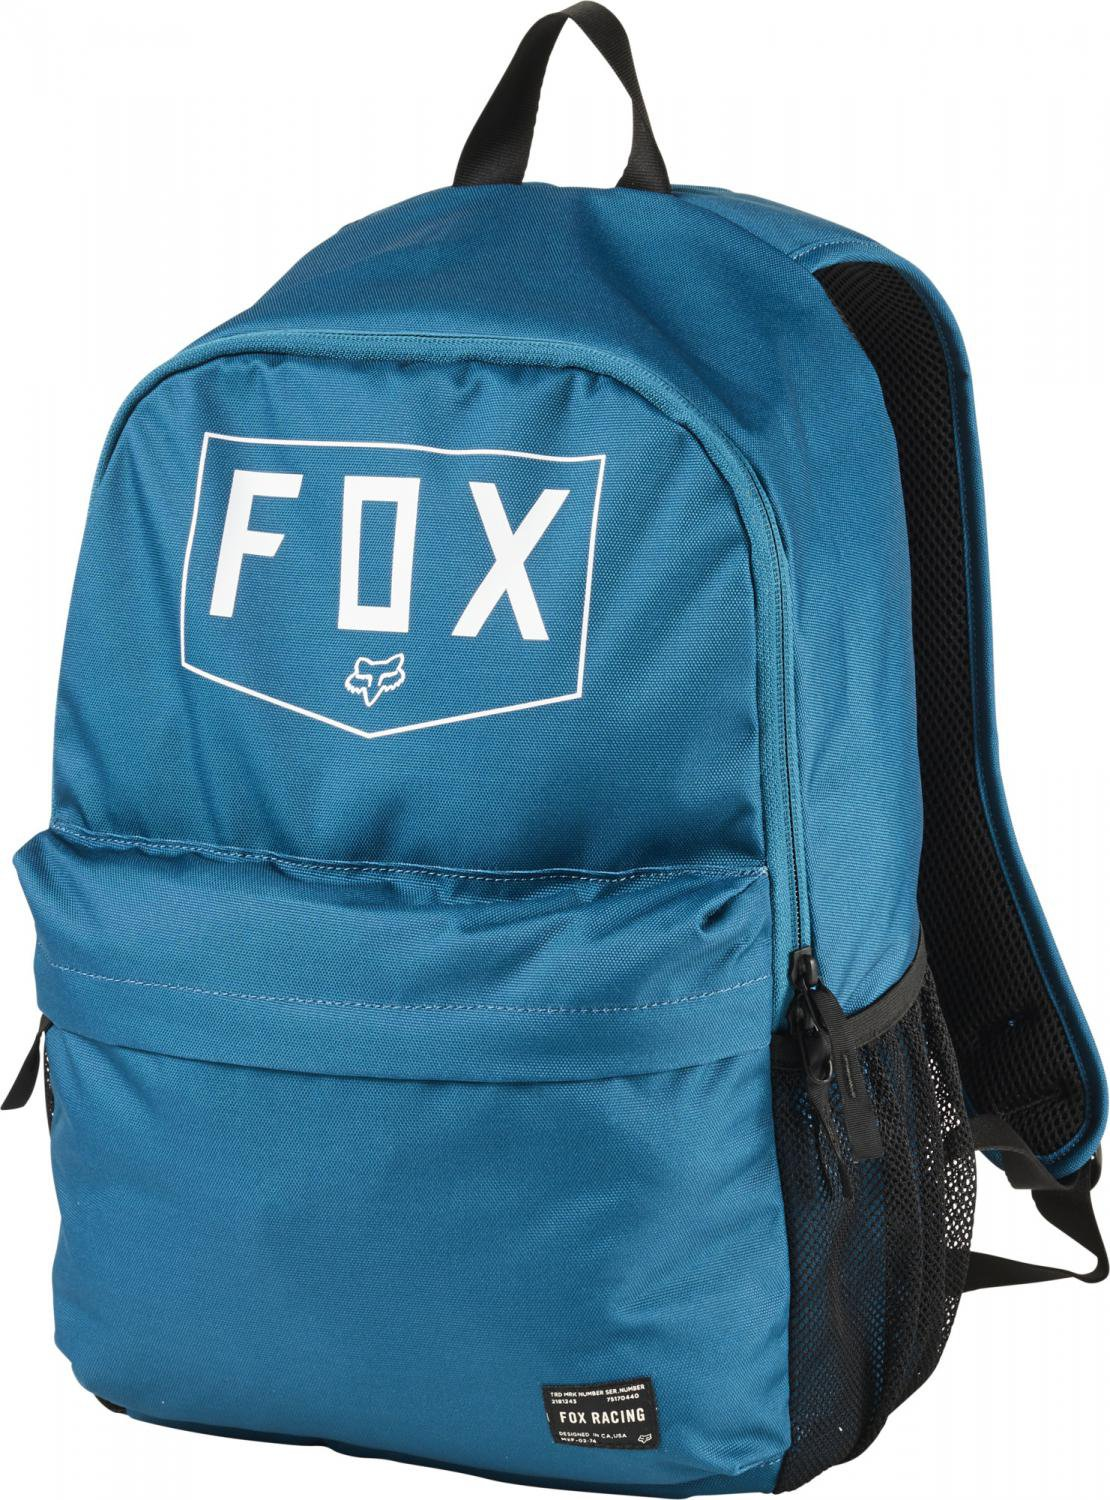 Batoh FOX Legacy Backpack Midnight Blue (modrý)